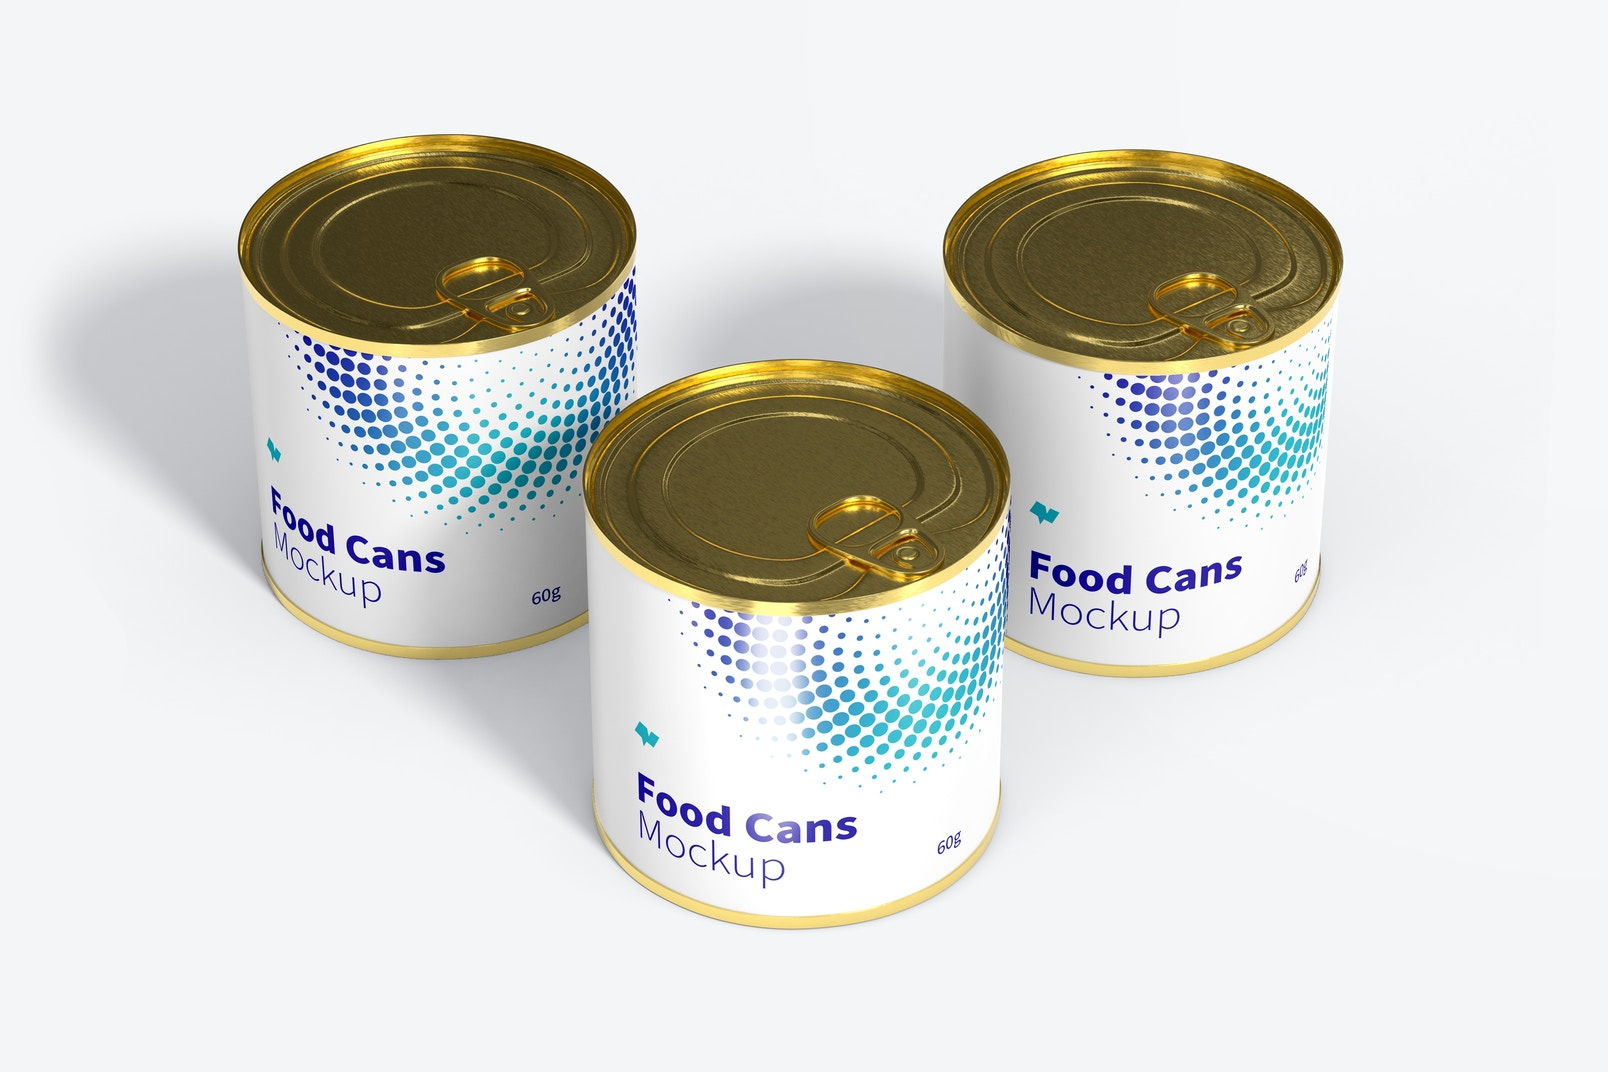 60g Food Cans Mockup, Perspective